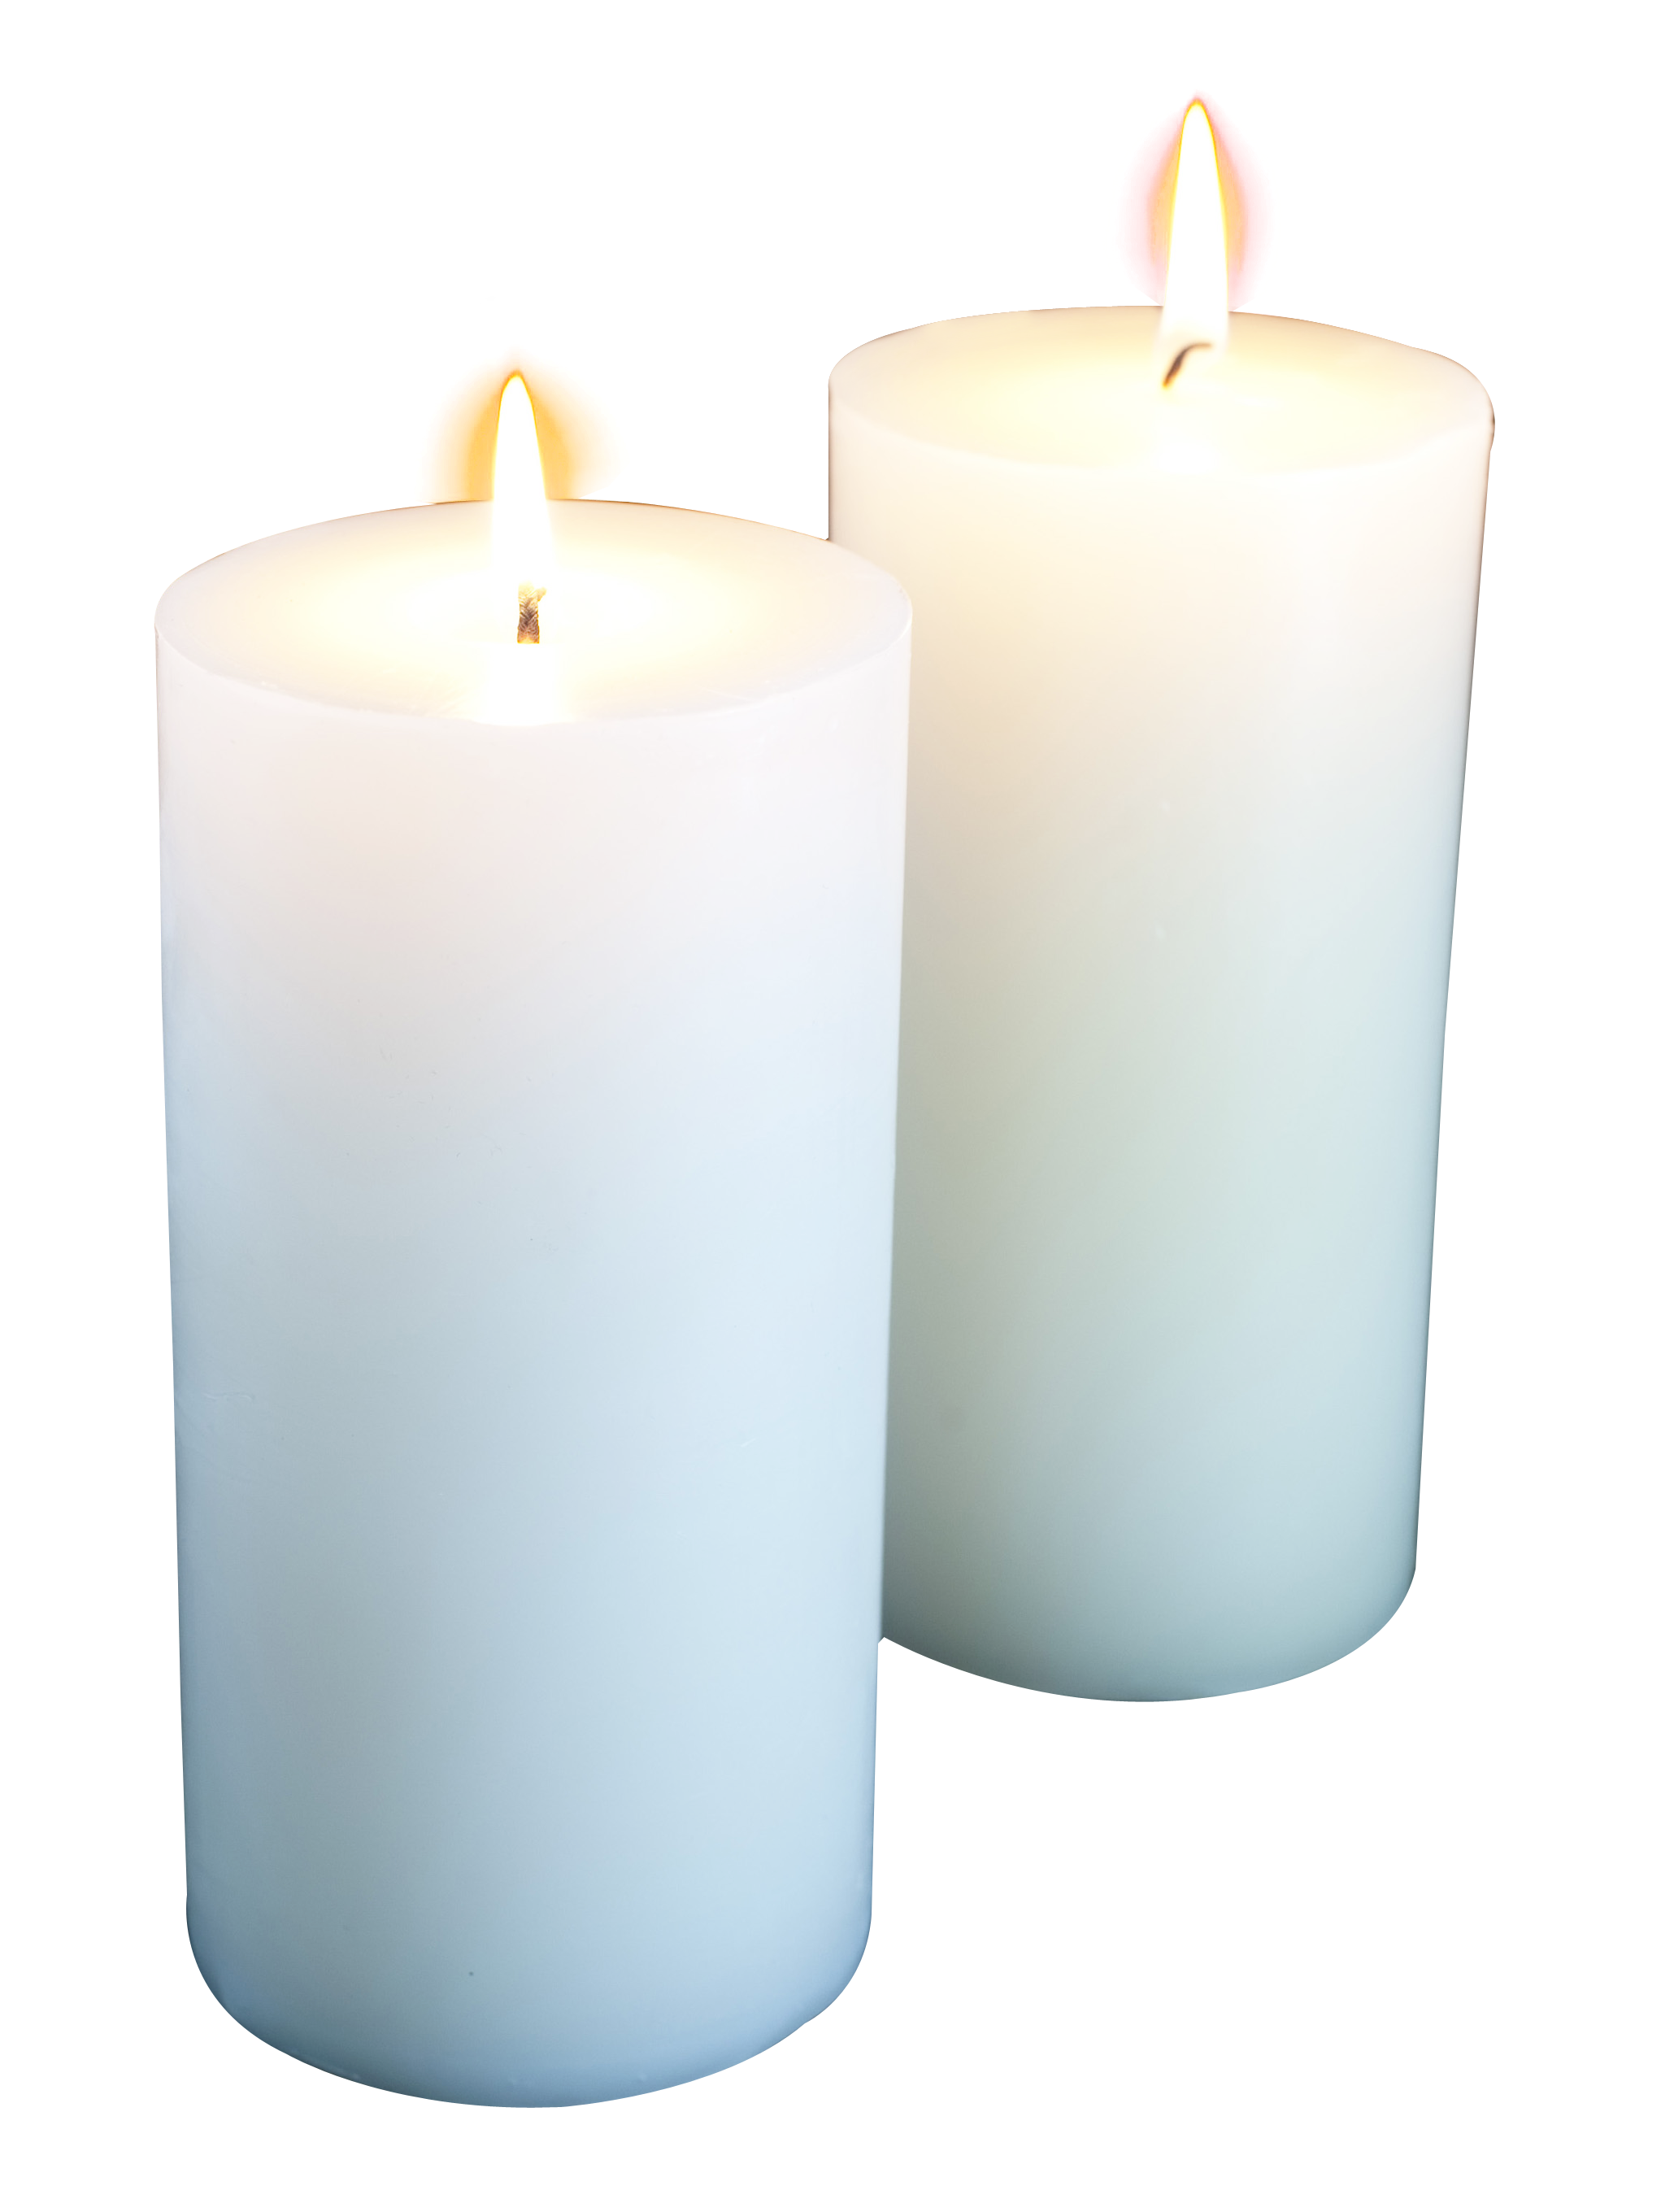 png library library Png image purepng free. Transparent candle wax